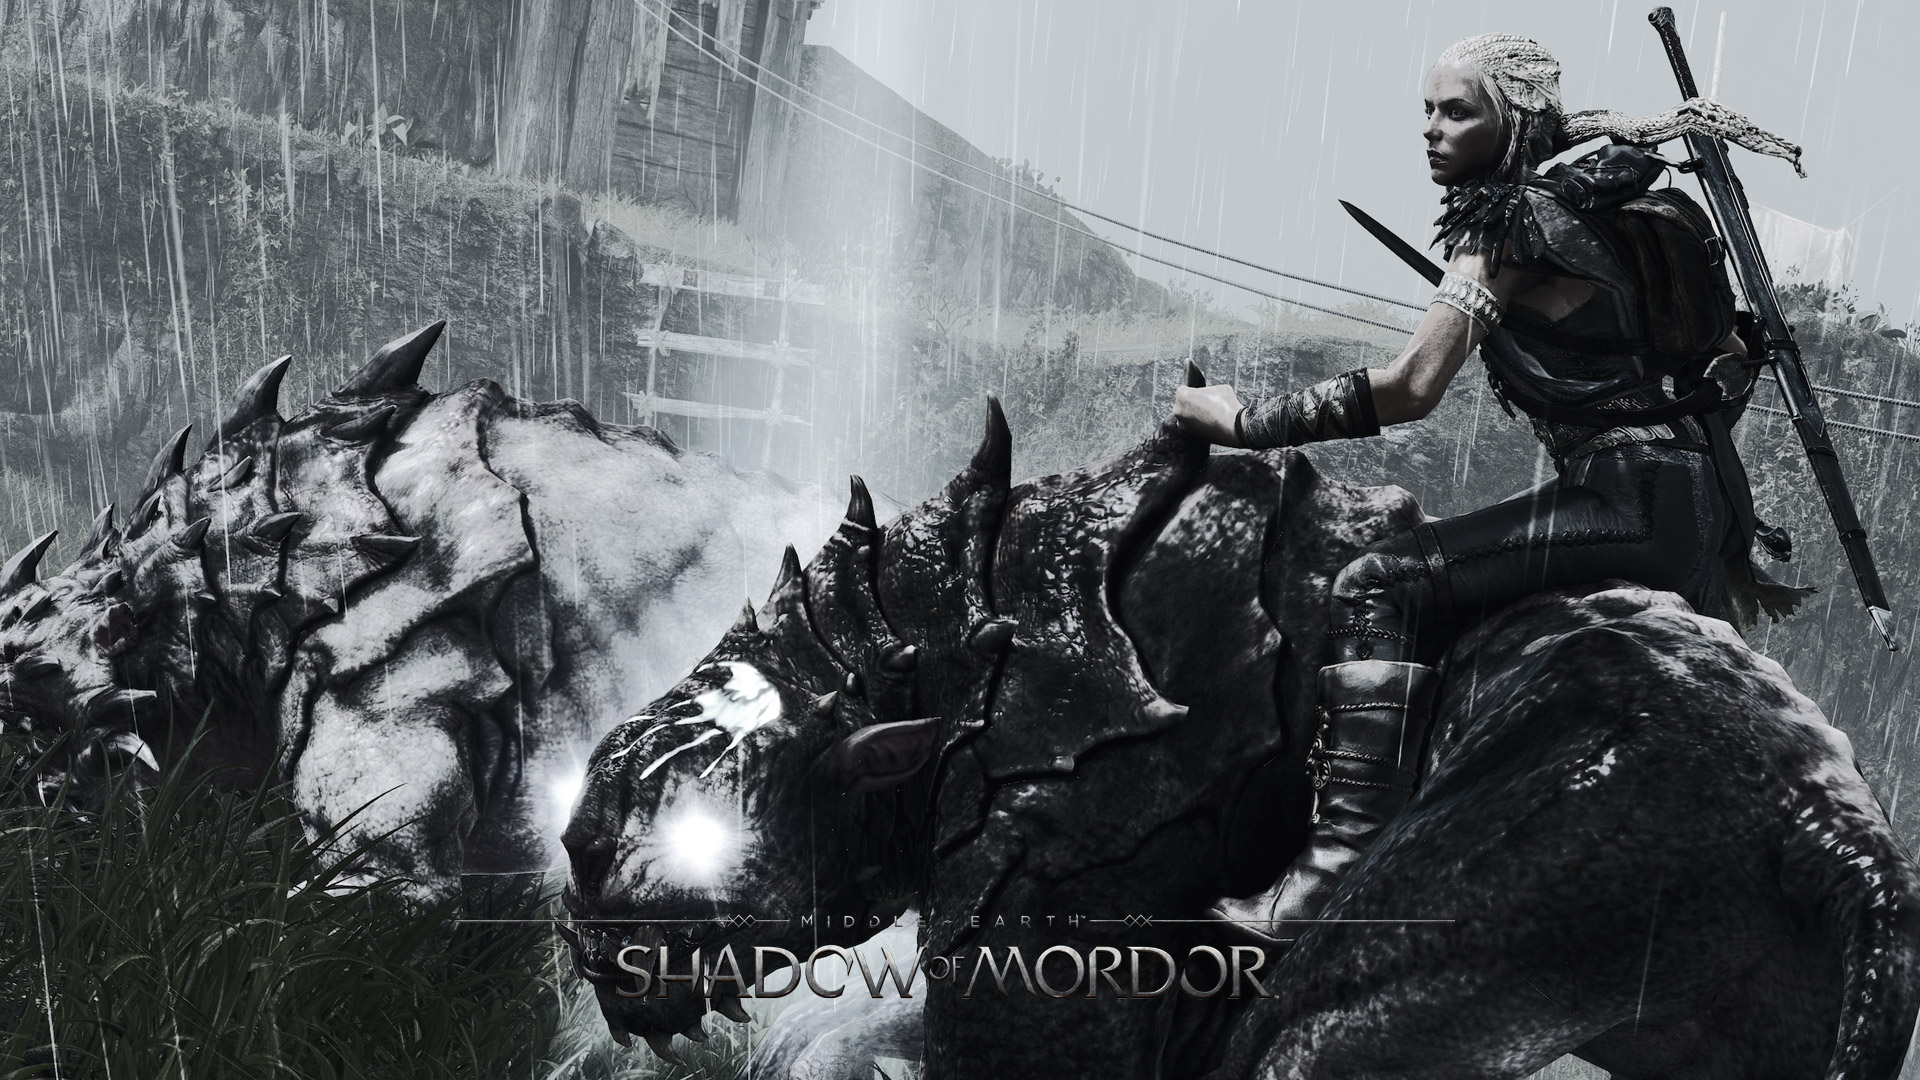 Middle-earth: Shadow of Mordor Wallpaper in 1920x1080